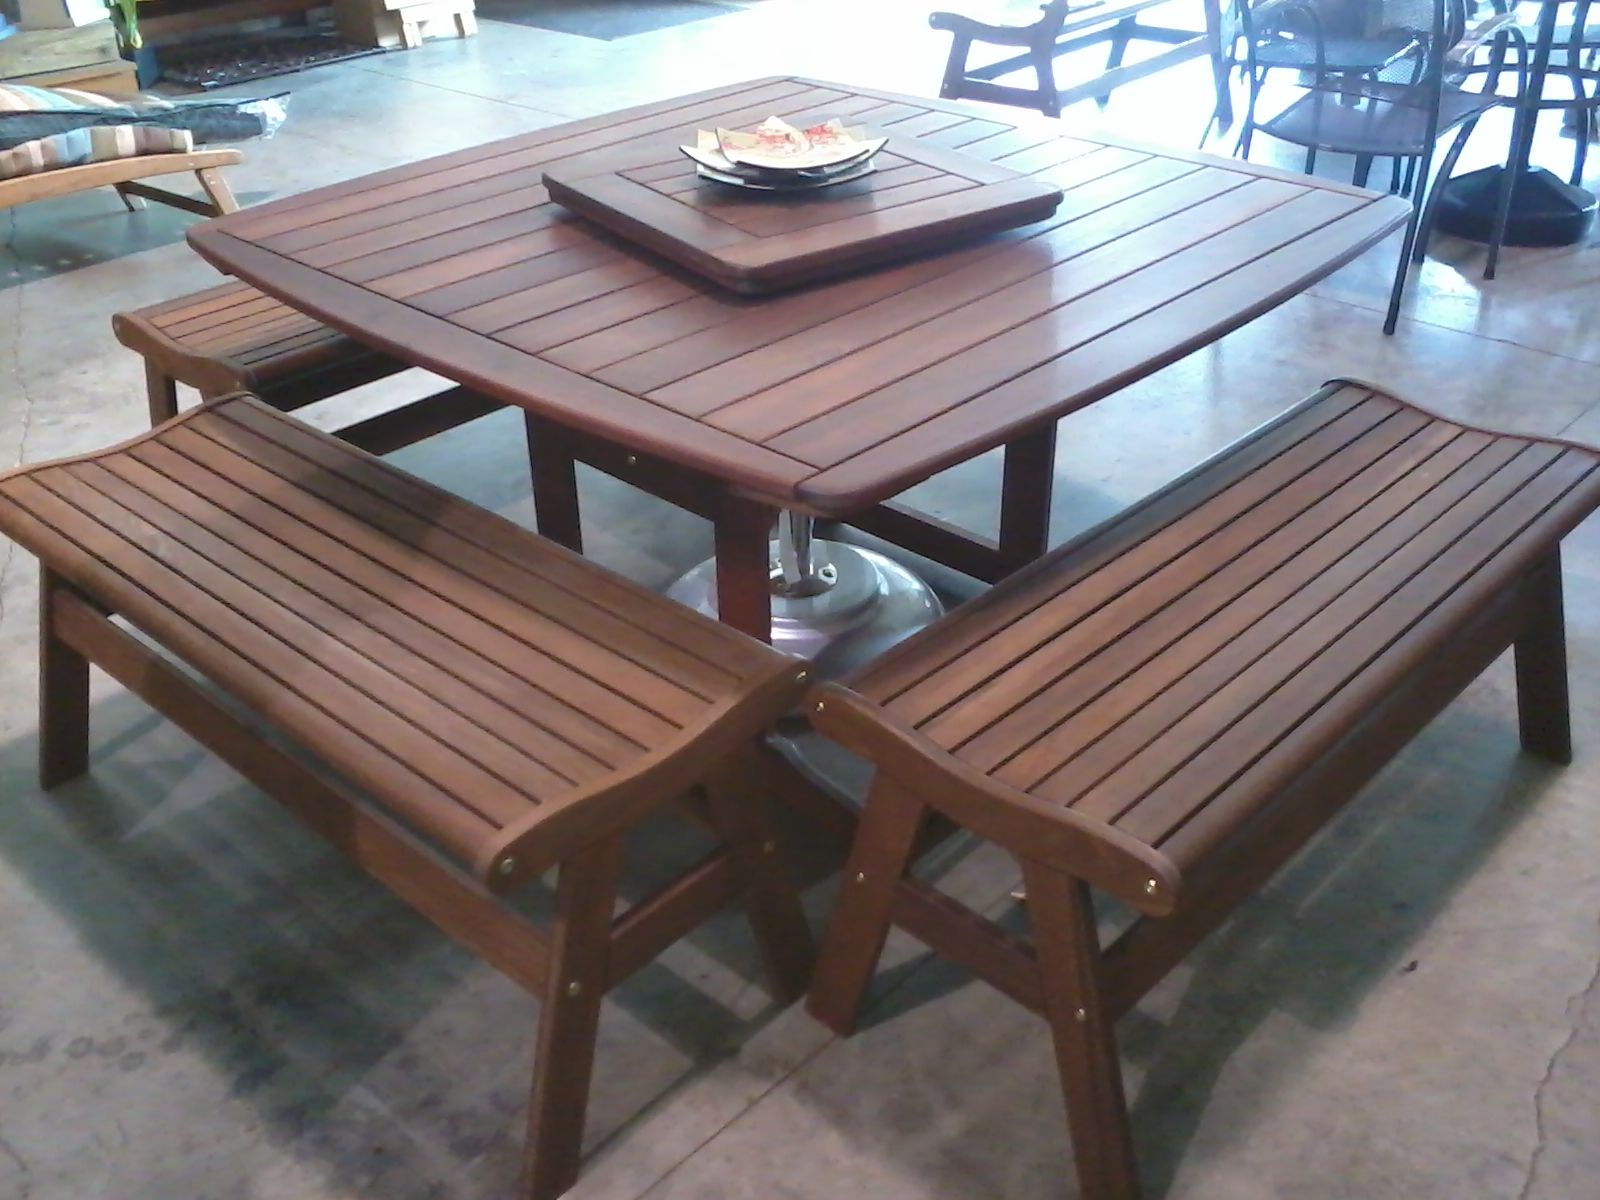 Exceptionnel Jensen Jarrah Vasse Table With 4 IPE Benches